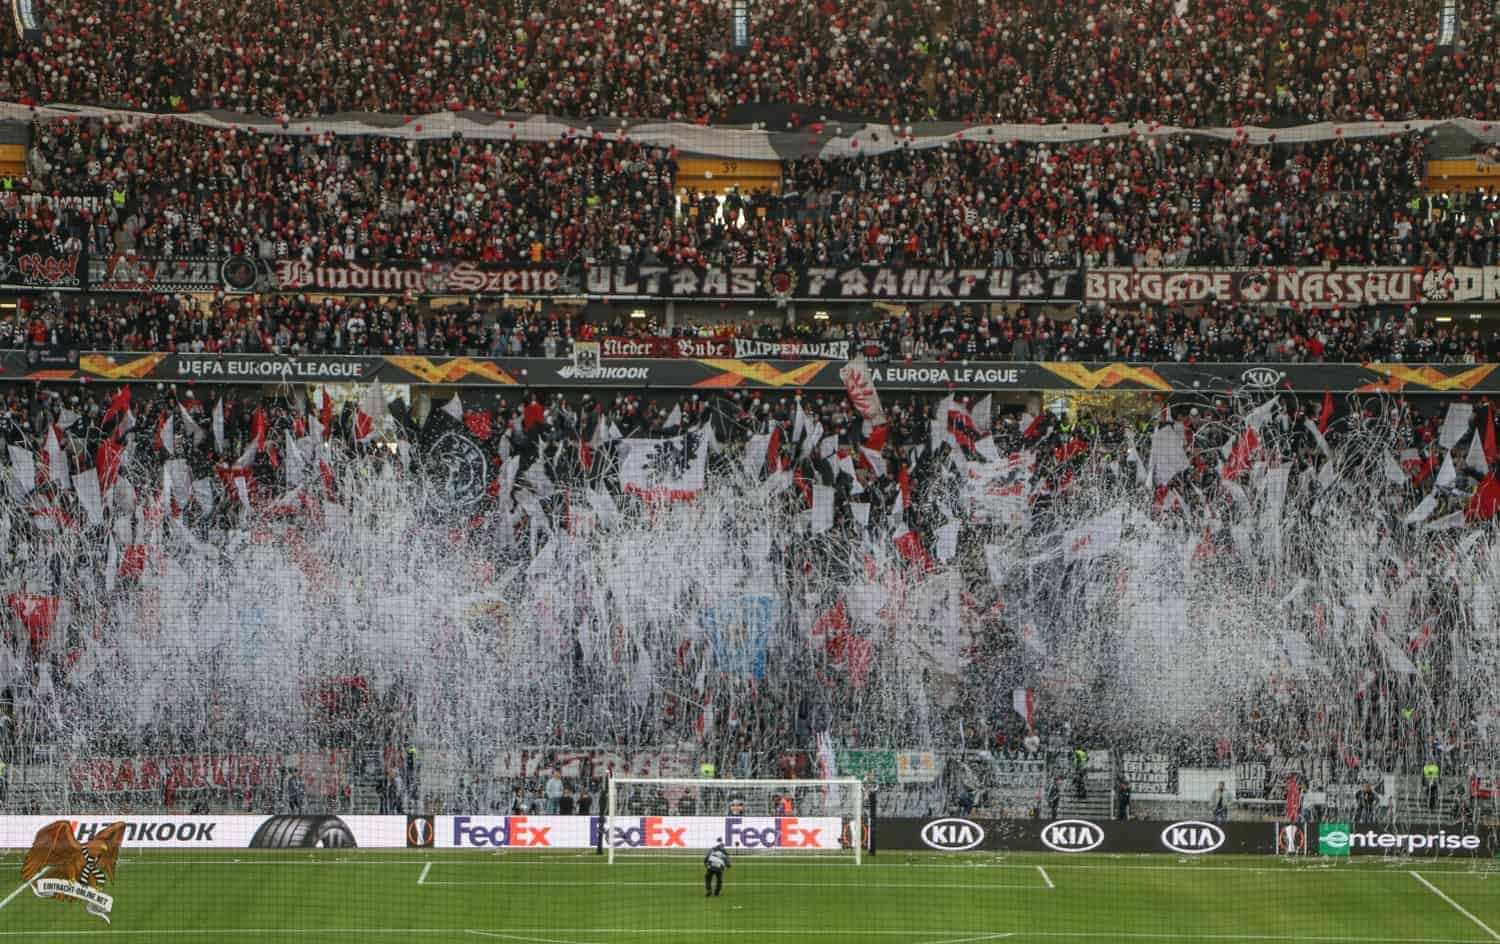 19-20-europaleague-eintracht-frankfurt-arsenal-london-09